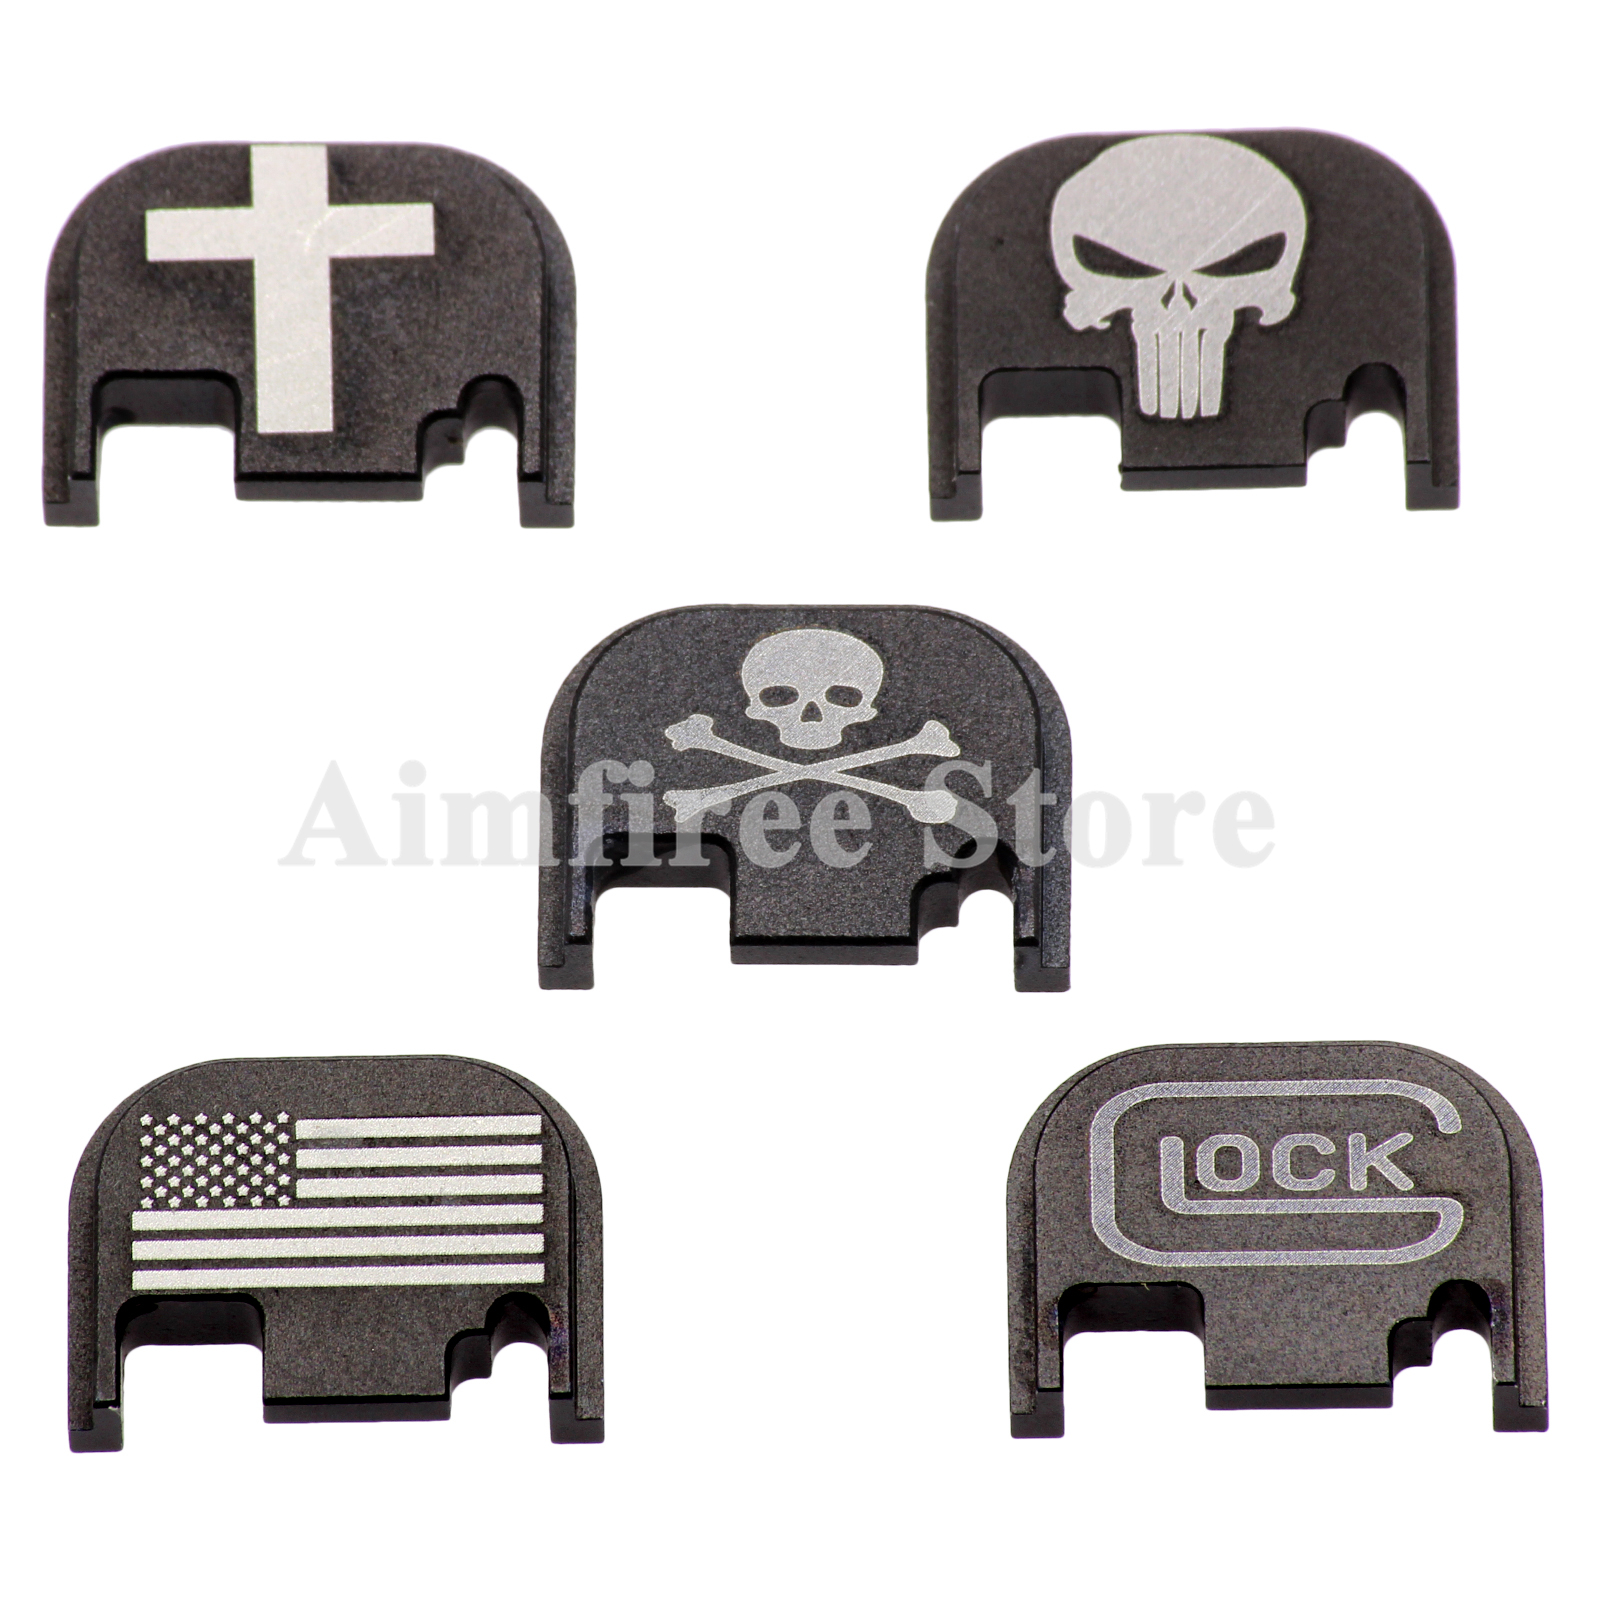 Tactical Rear Cover Slide Plate for Gen 1 2 3 4 Glock 17 19 21 22 23 26 27 31 32 33 34 35 40 41 9mm .45 Pistol Gun Accessories image